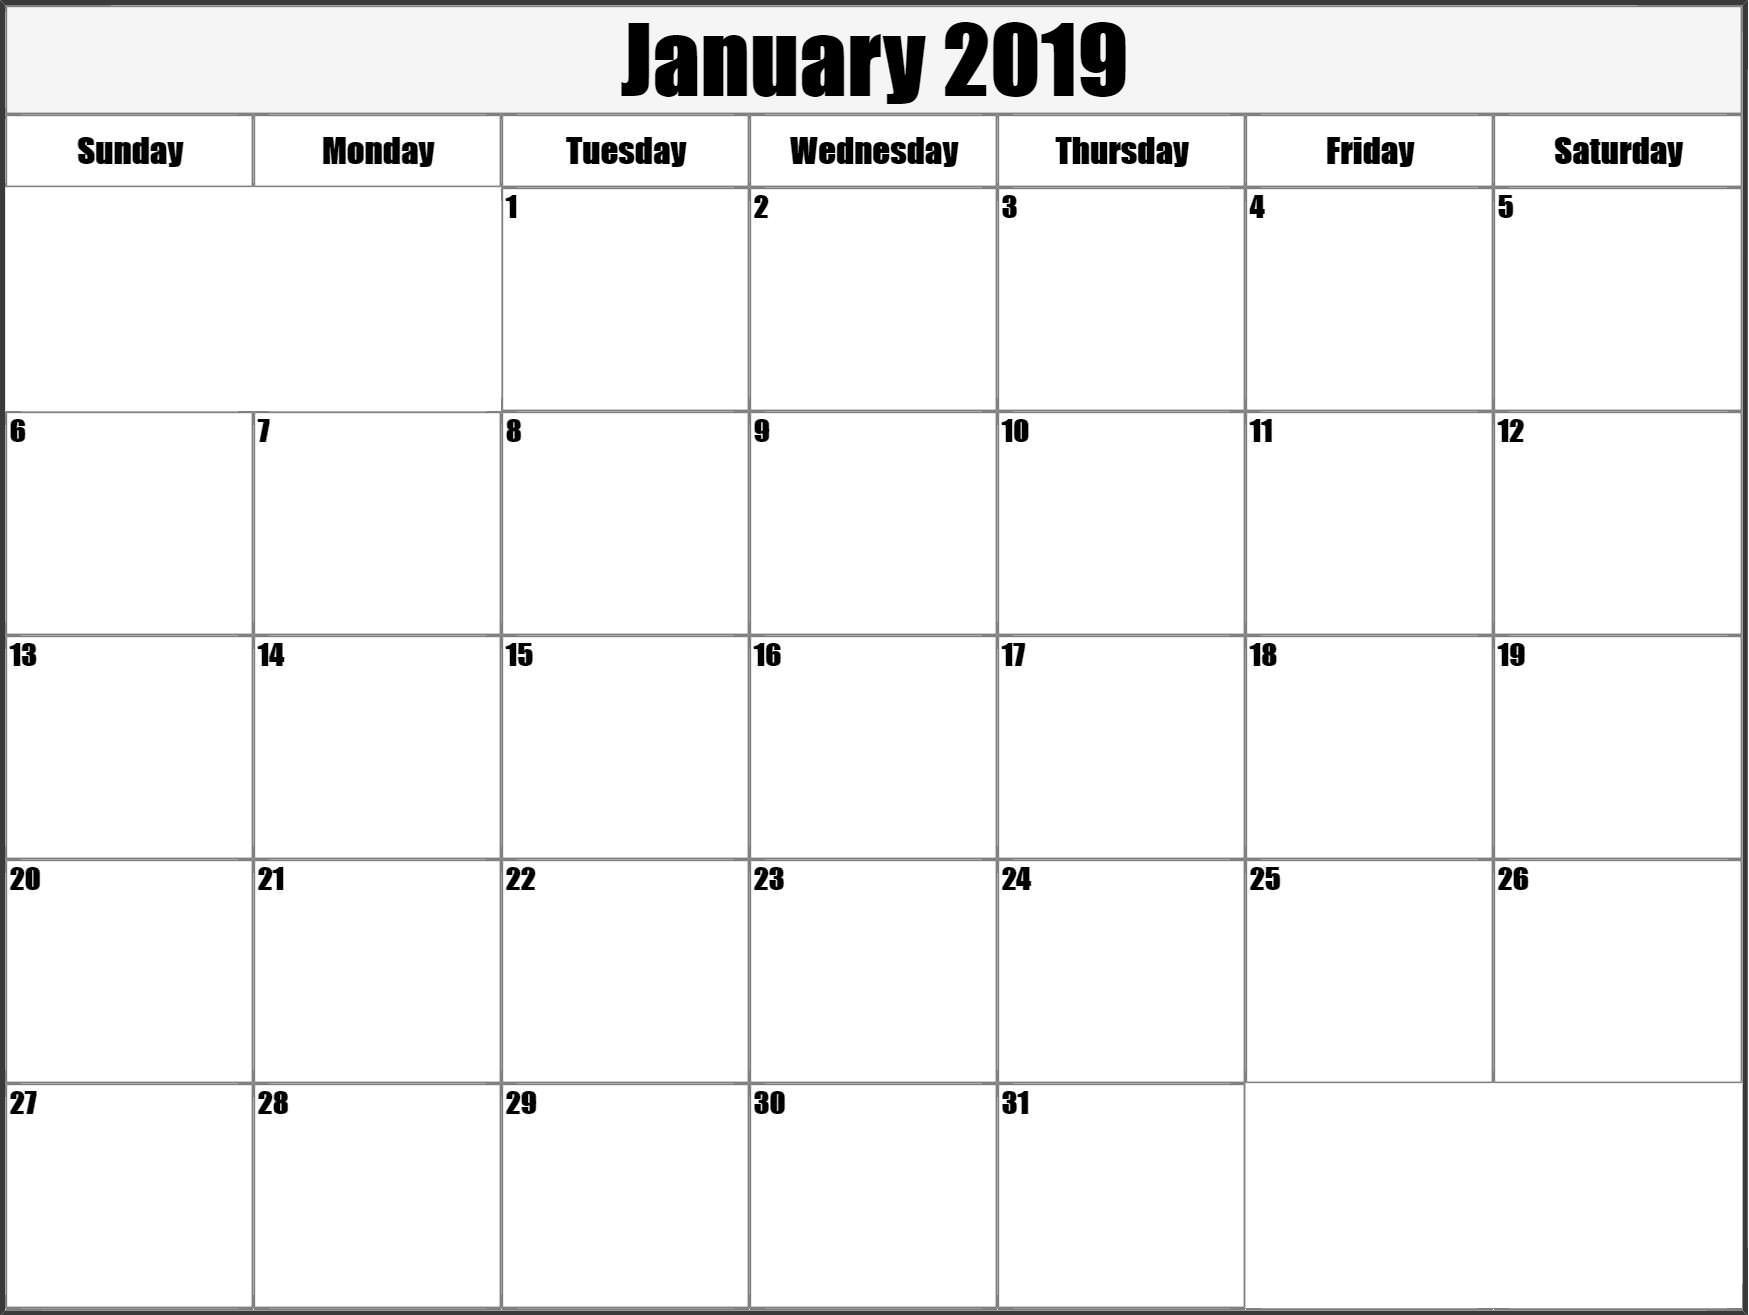 Calendar January 2019 Printable Large | Calendar January 2019 with regard to Large Printable Blank Calendar Pages